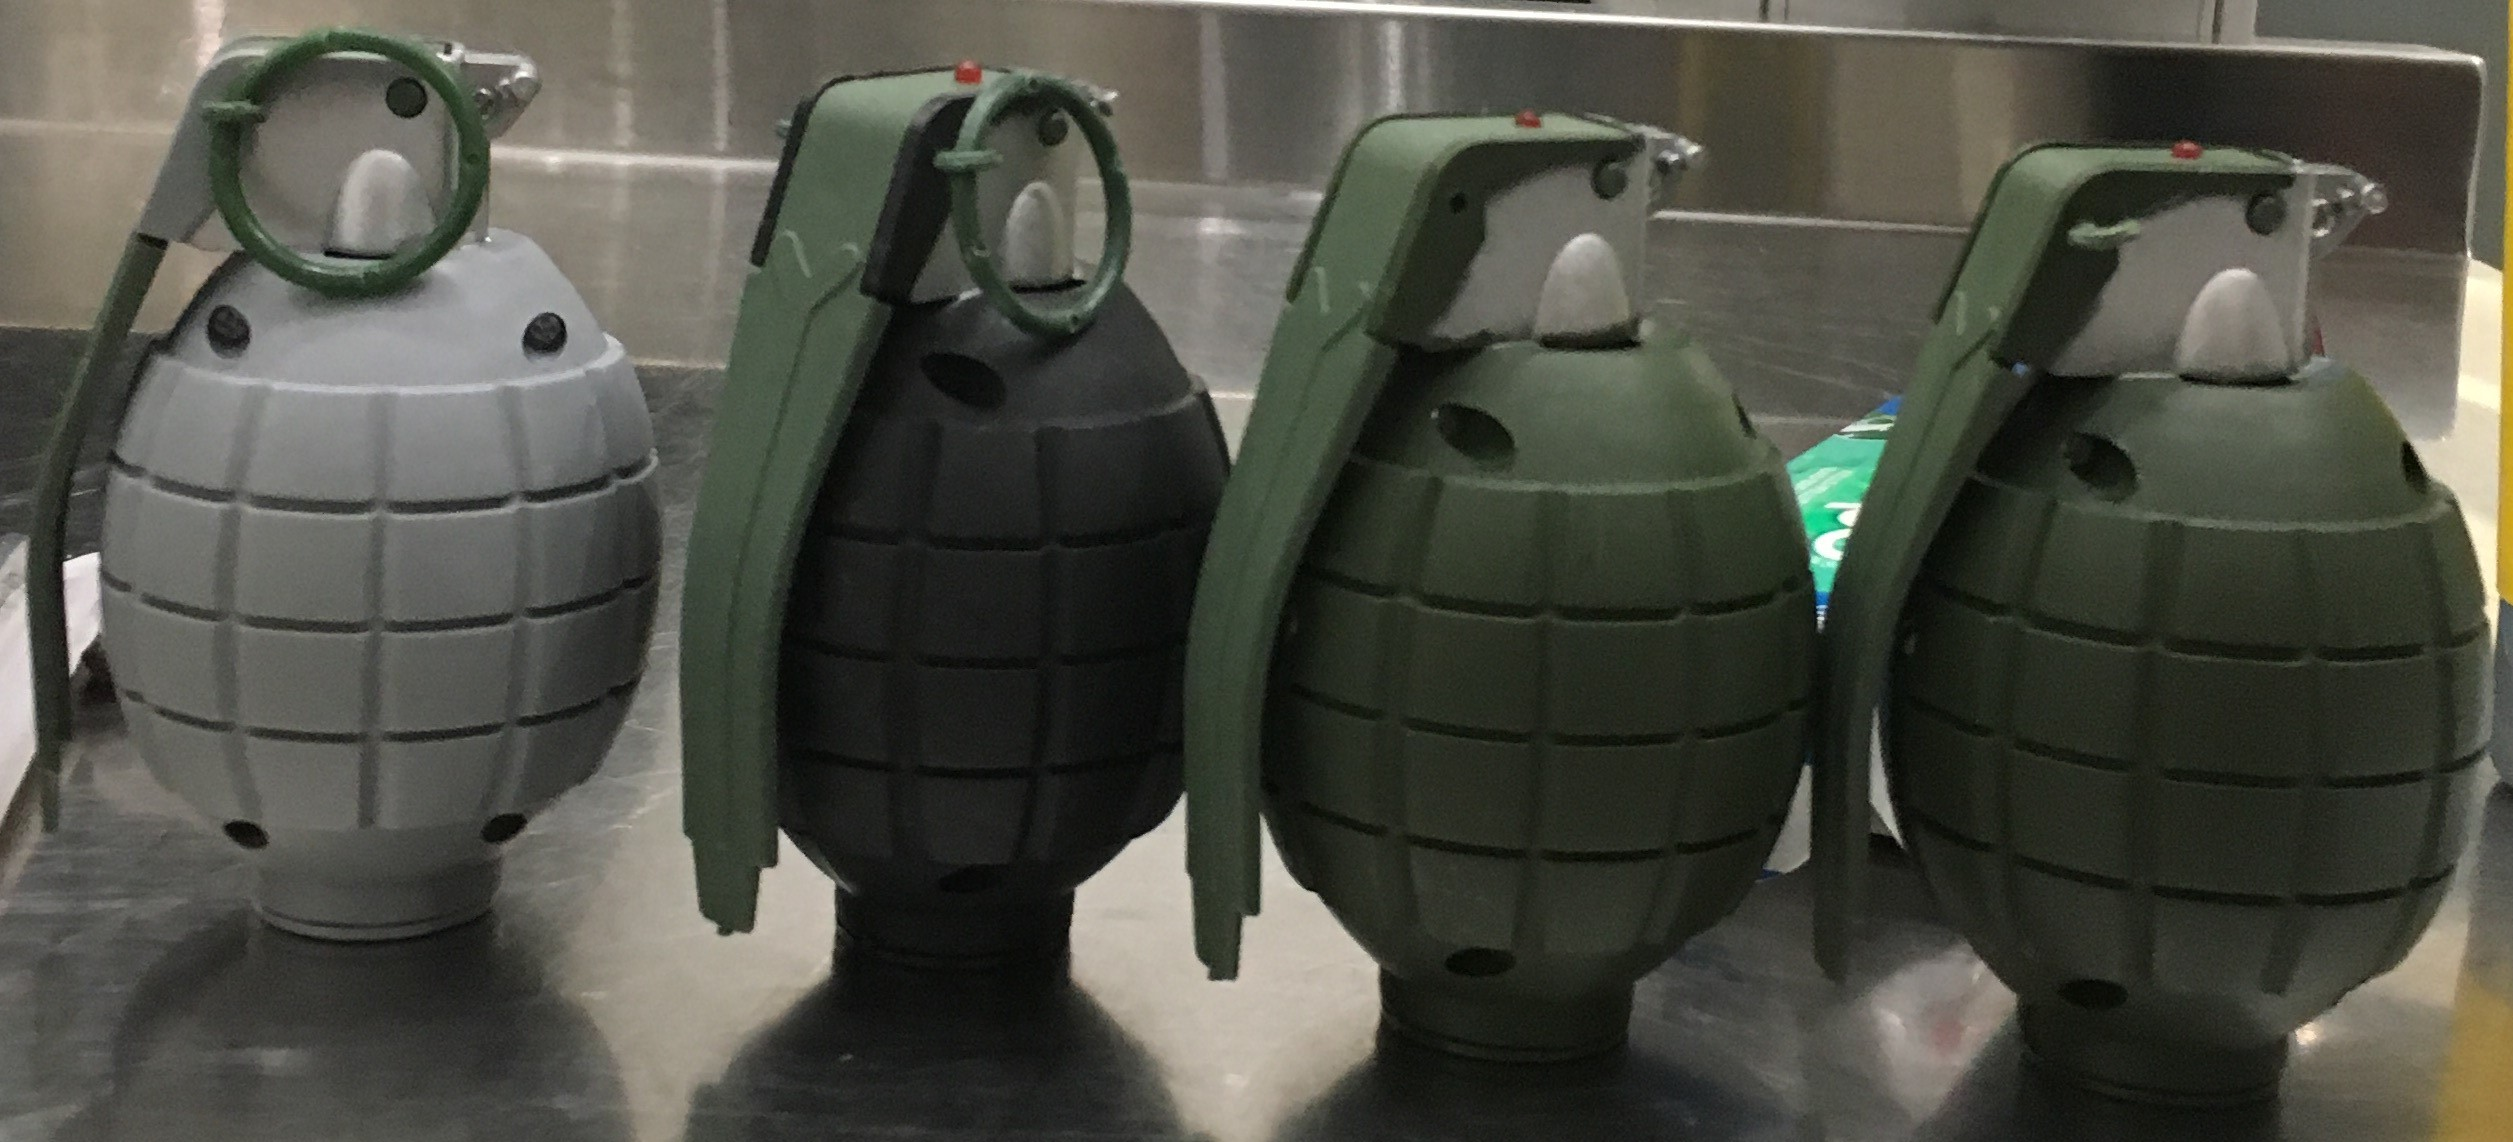 These 4 replica grenades were discovered in a carry-on bag at the Baltimore-Washington International Airport (BWI).